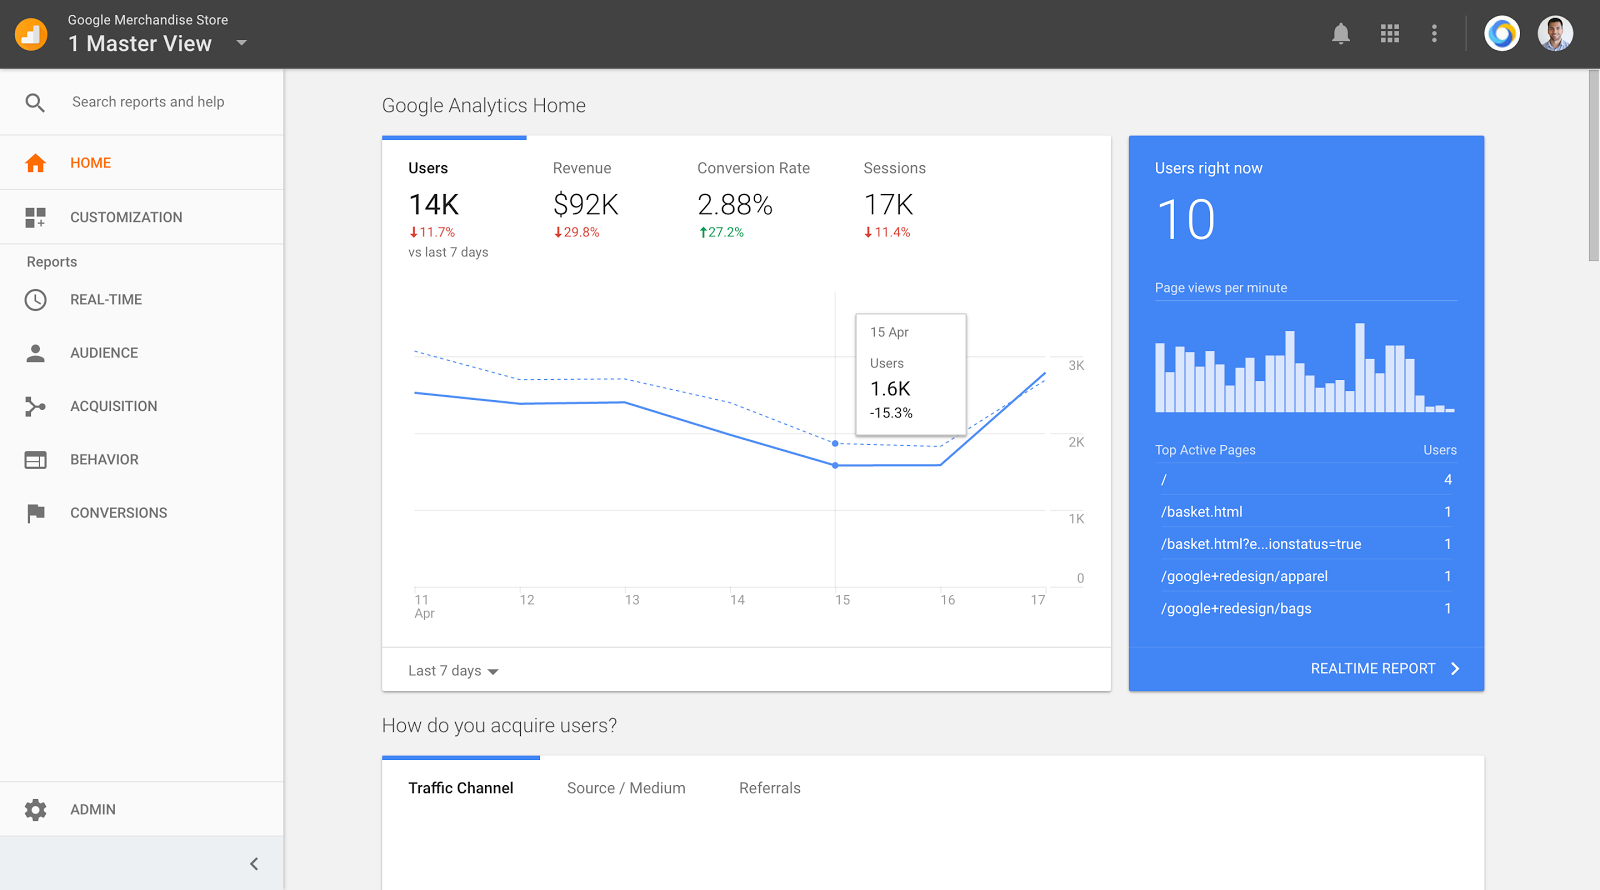 Google Announces Updates for Google Analytics, Google Home and an Ad Blocker for Chrome | Social Media Today